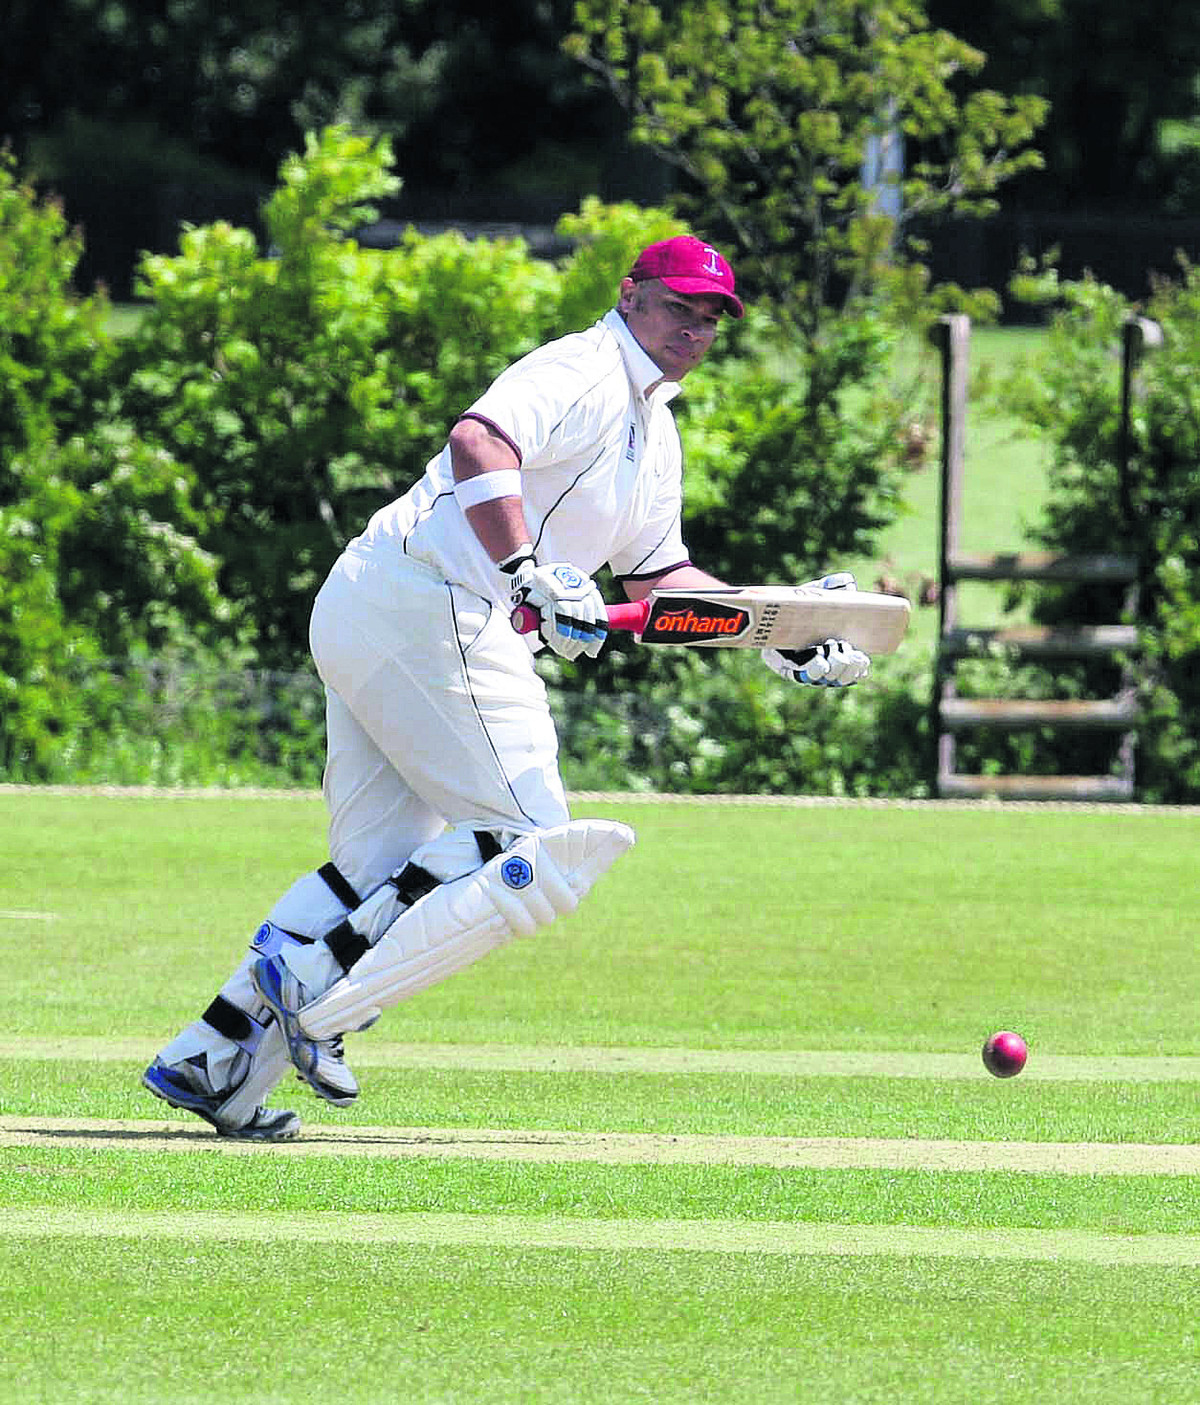 Craig Haupt top-scored for Banbury